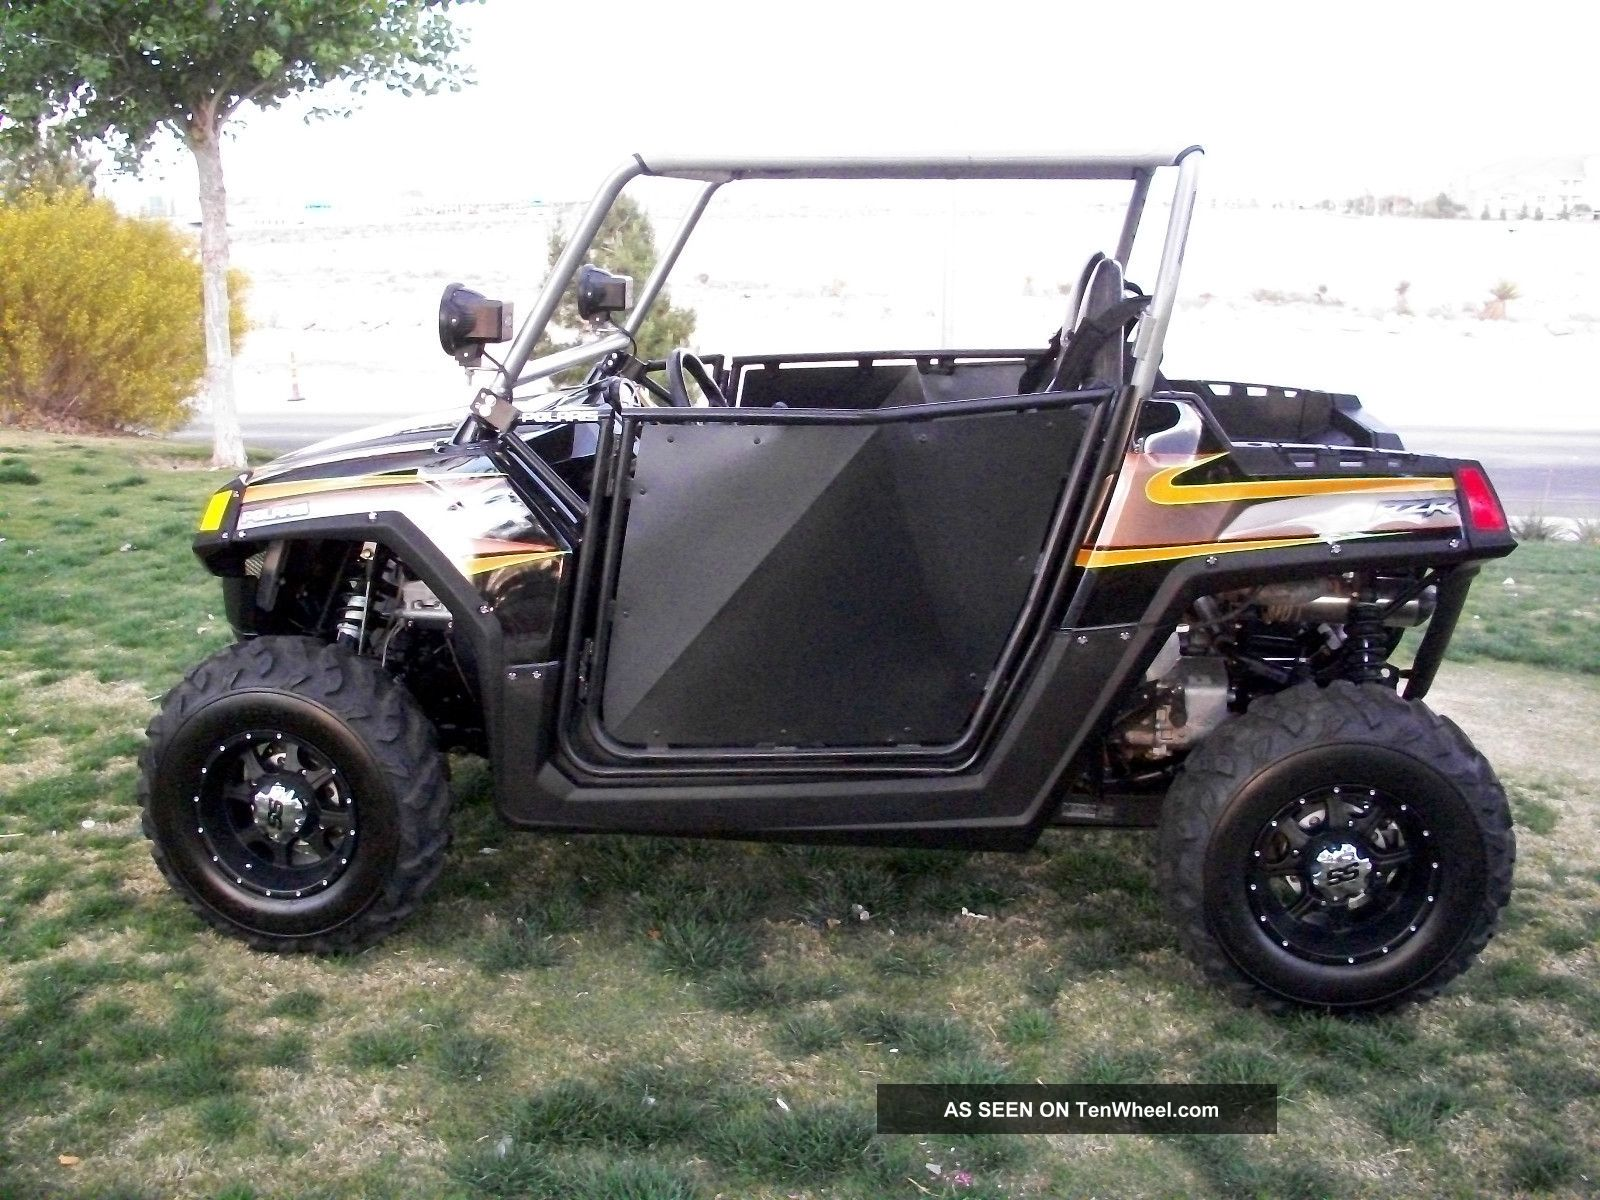 Wiring Diagram For Polaris Efi Of Polaris Sportsman Efi Wiring Diagram besides Honda Sl Wire Harness And Diagram as well Wiringdiagram Dualbatt Winch Headlight together with Capture as well Sp. on 2008 polaris sportsman 800 wiring diagram